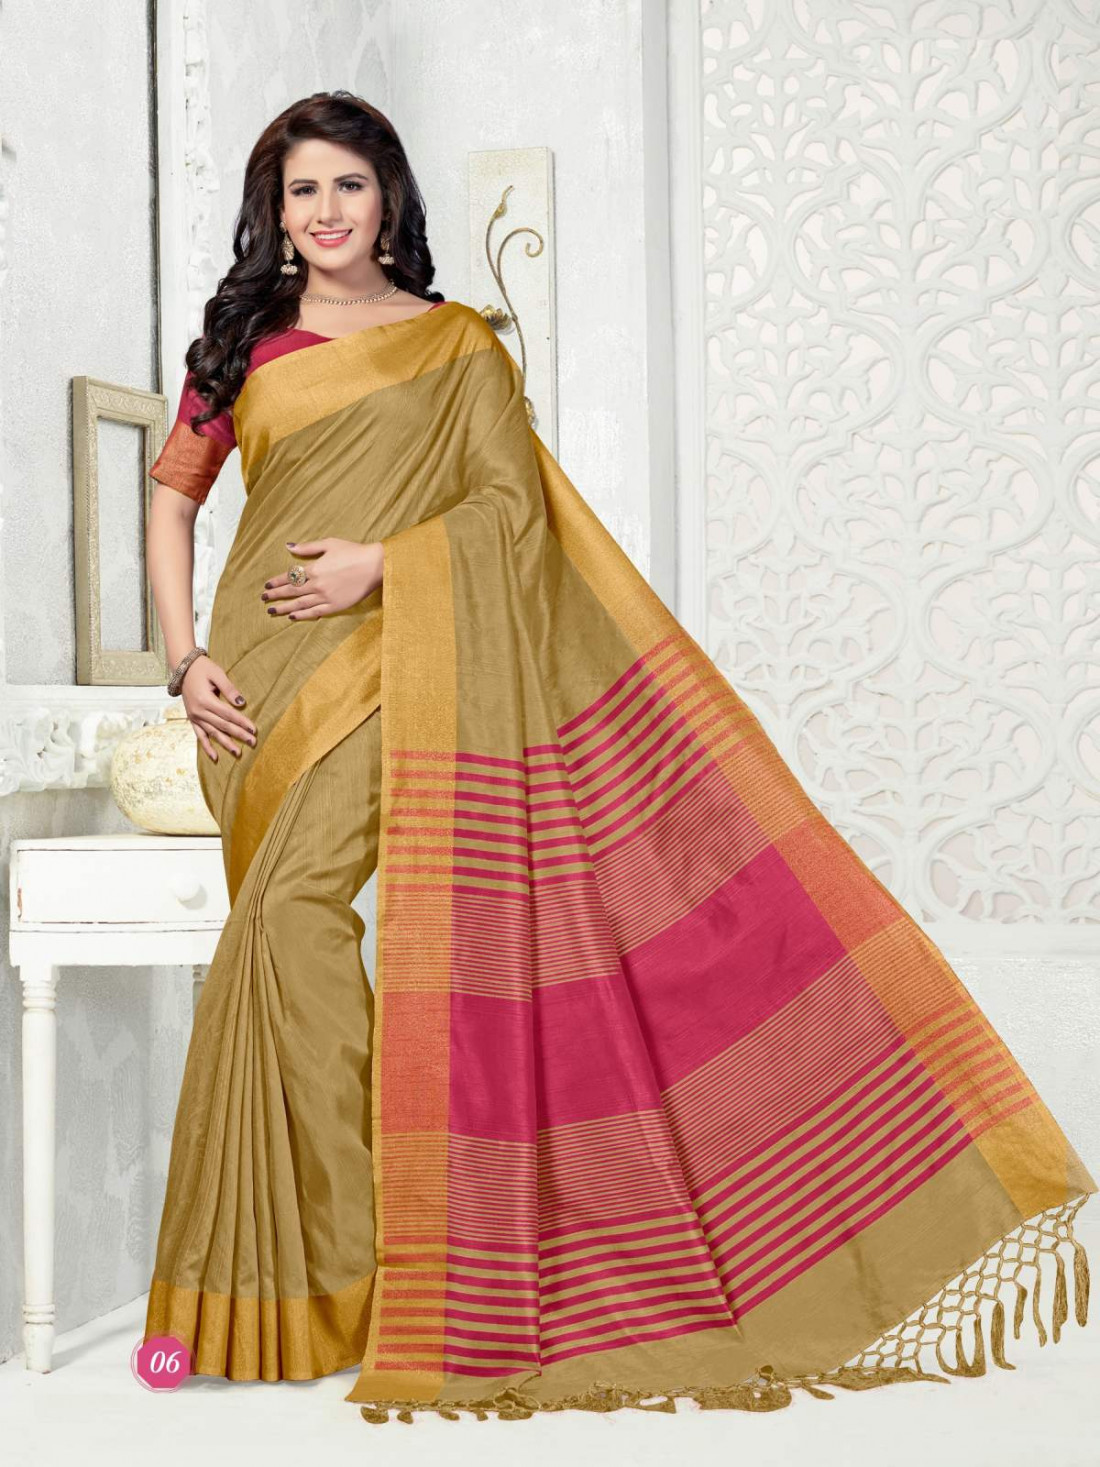 acd20afb3ea Sudarshan Family Store Silk Blend Plain Design overall body gold and Silver  border with Running Self